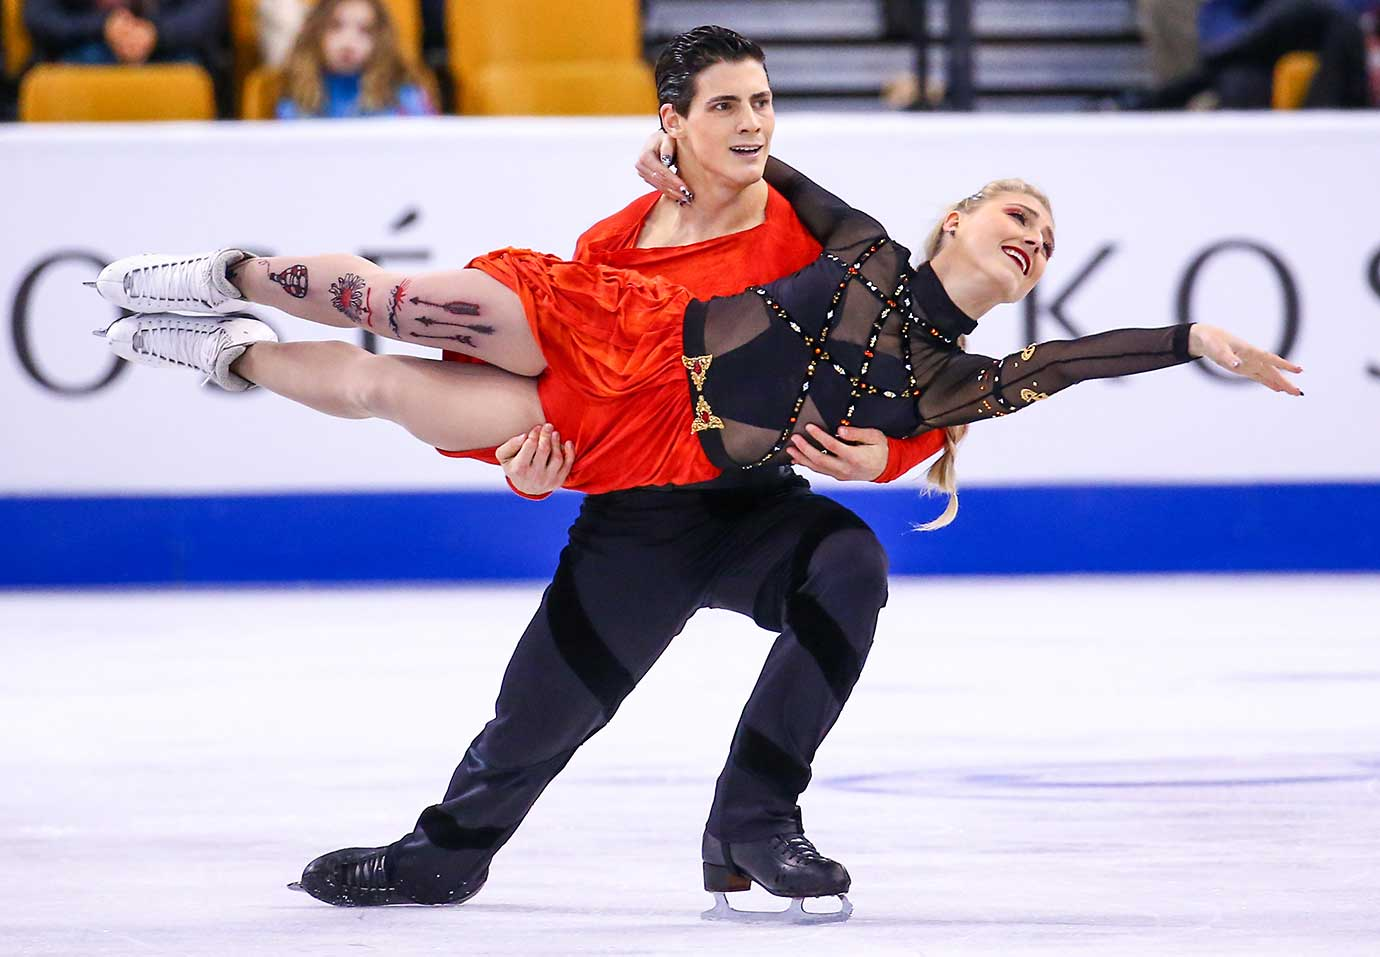 Piper Gilles and Paul Poirier of Canada compete during Day 4 of the World Figure Skating Championships.